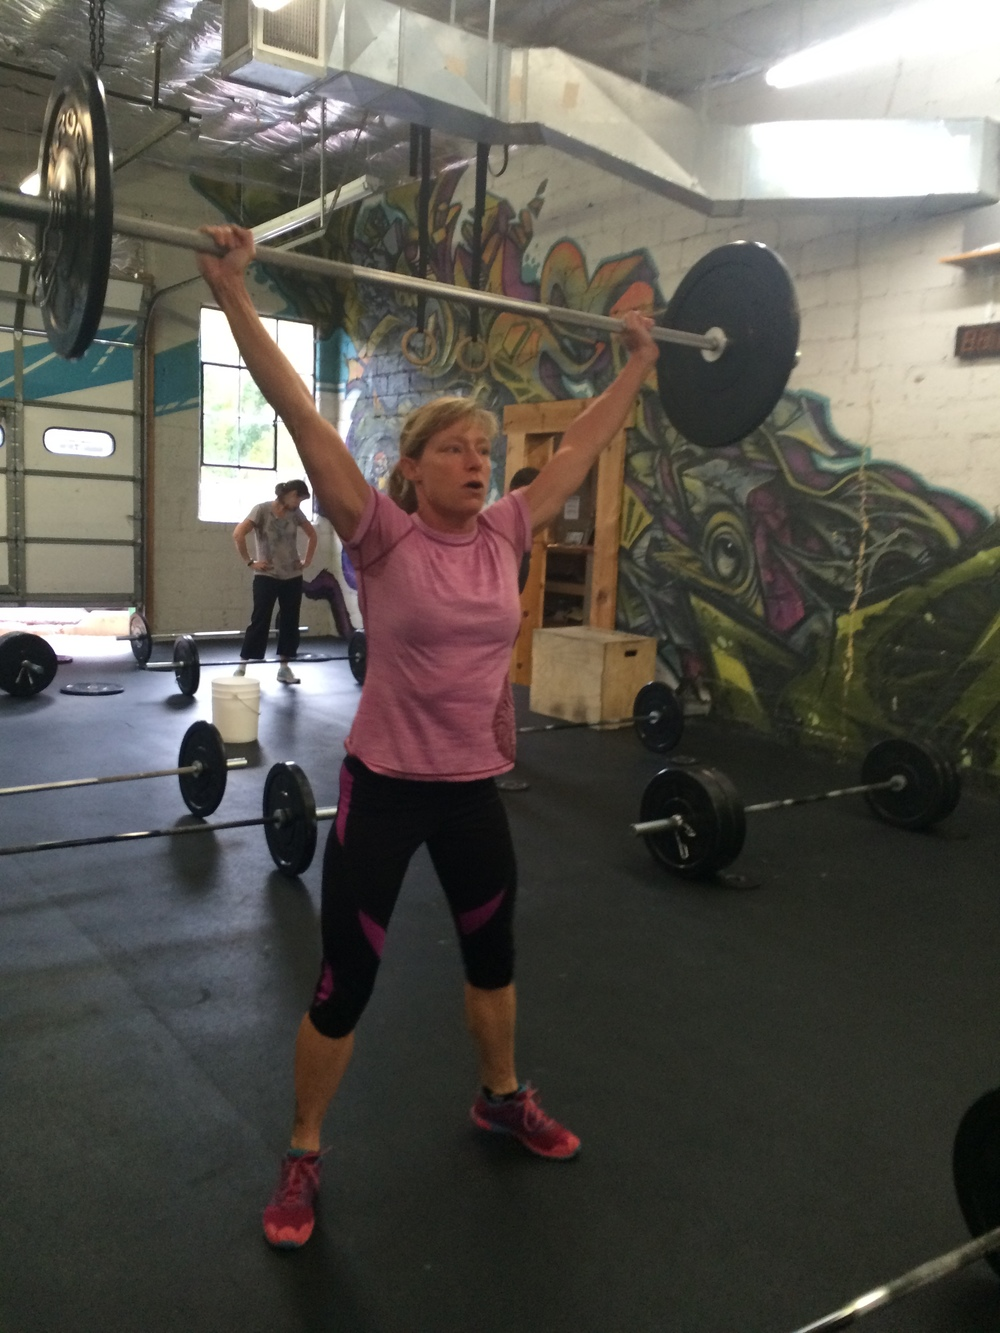 100 snatches with impeccable form were no problem for diane. Good scaling makes great workouts possible.